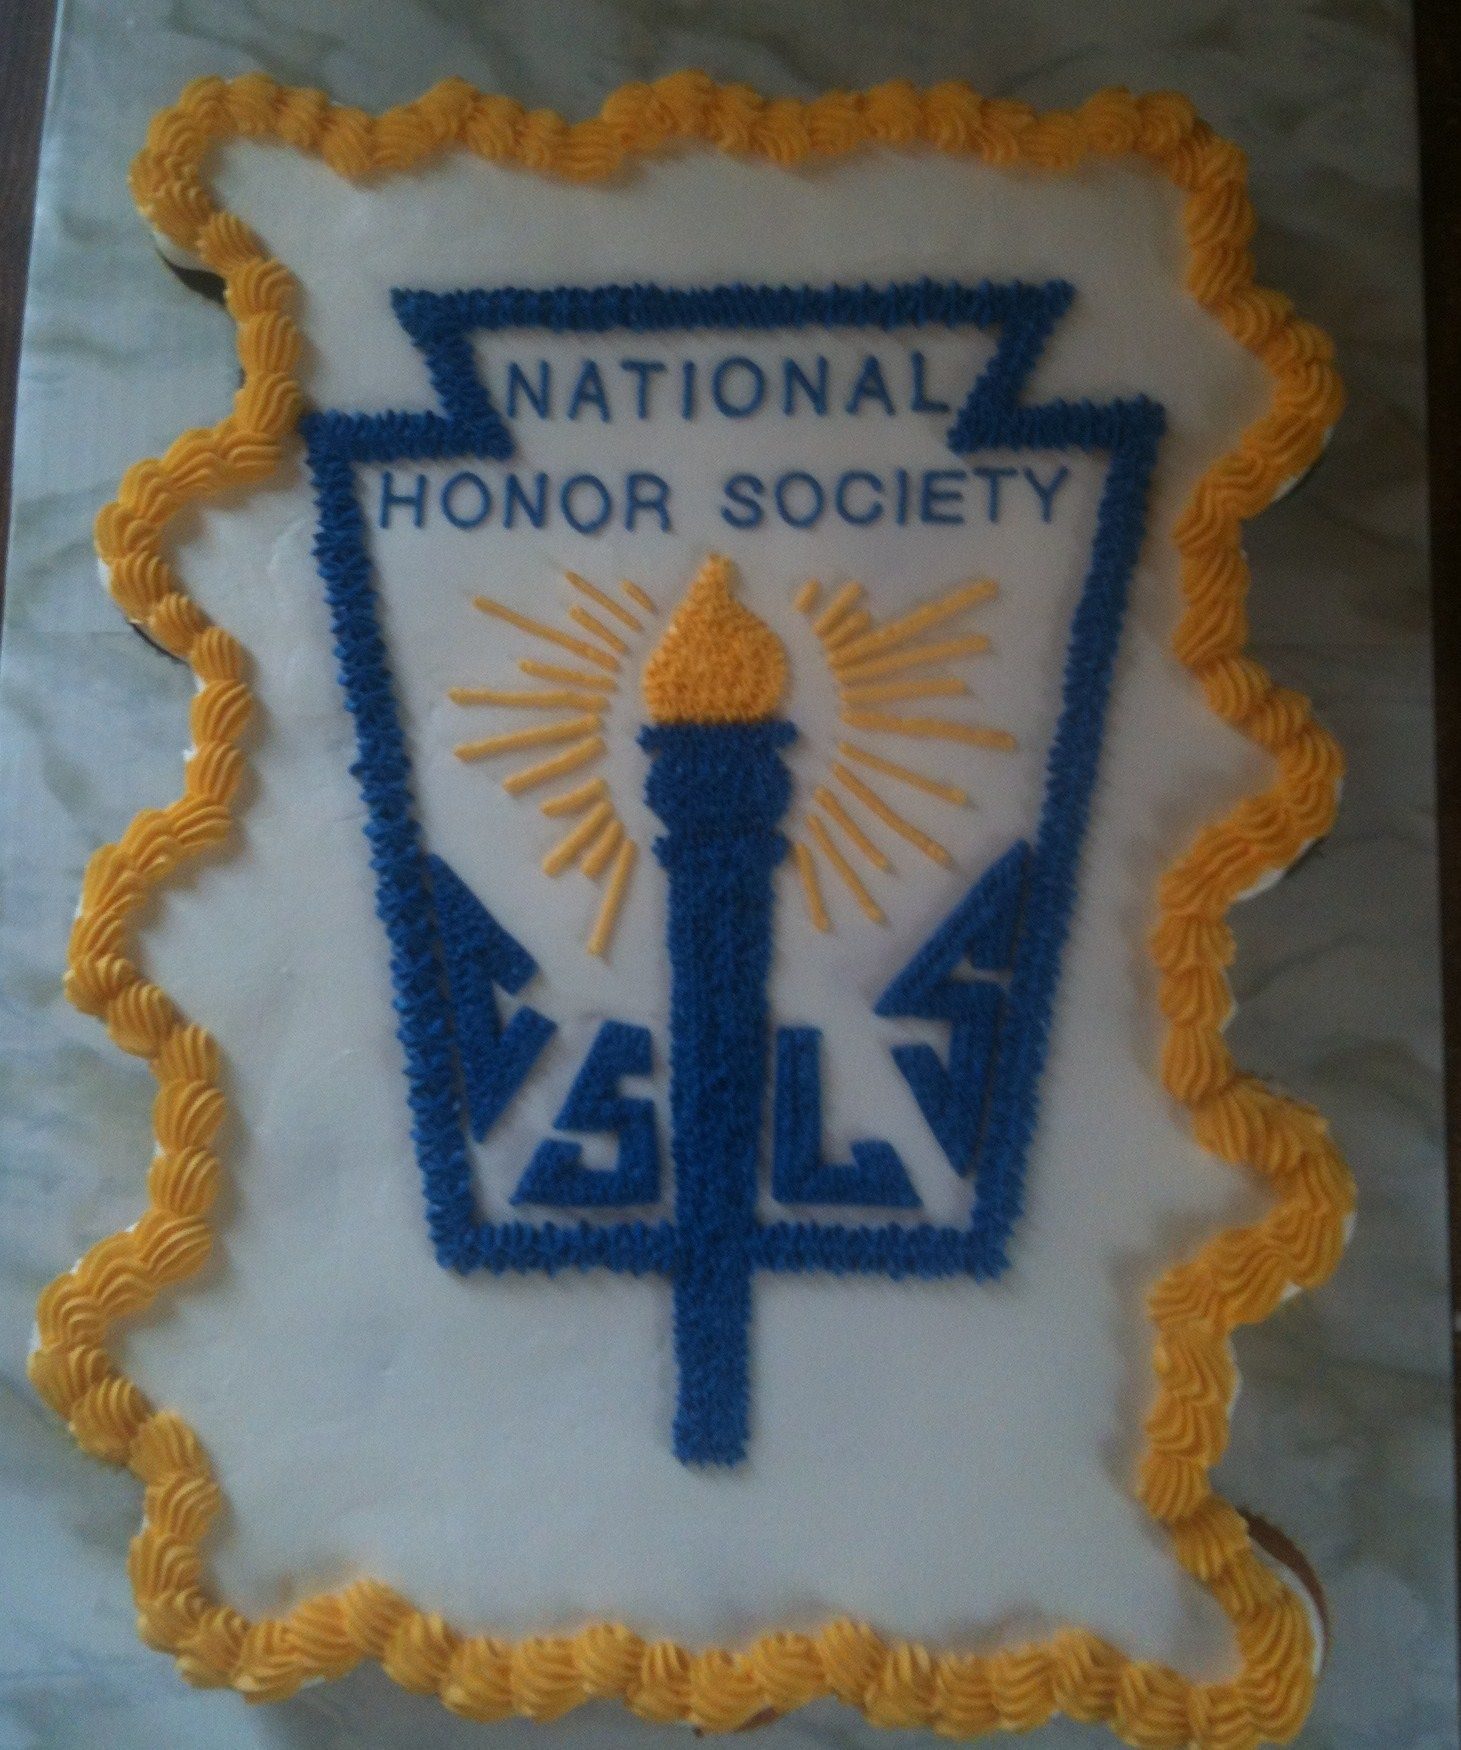 best images about national honor society dating 17 best images about national honor society dating games national honor society and teaching